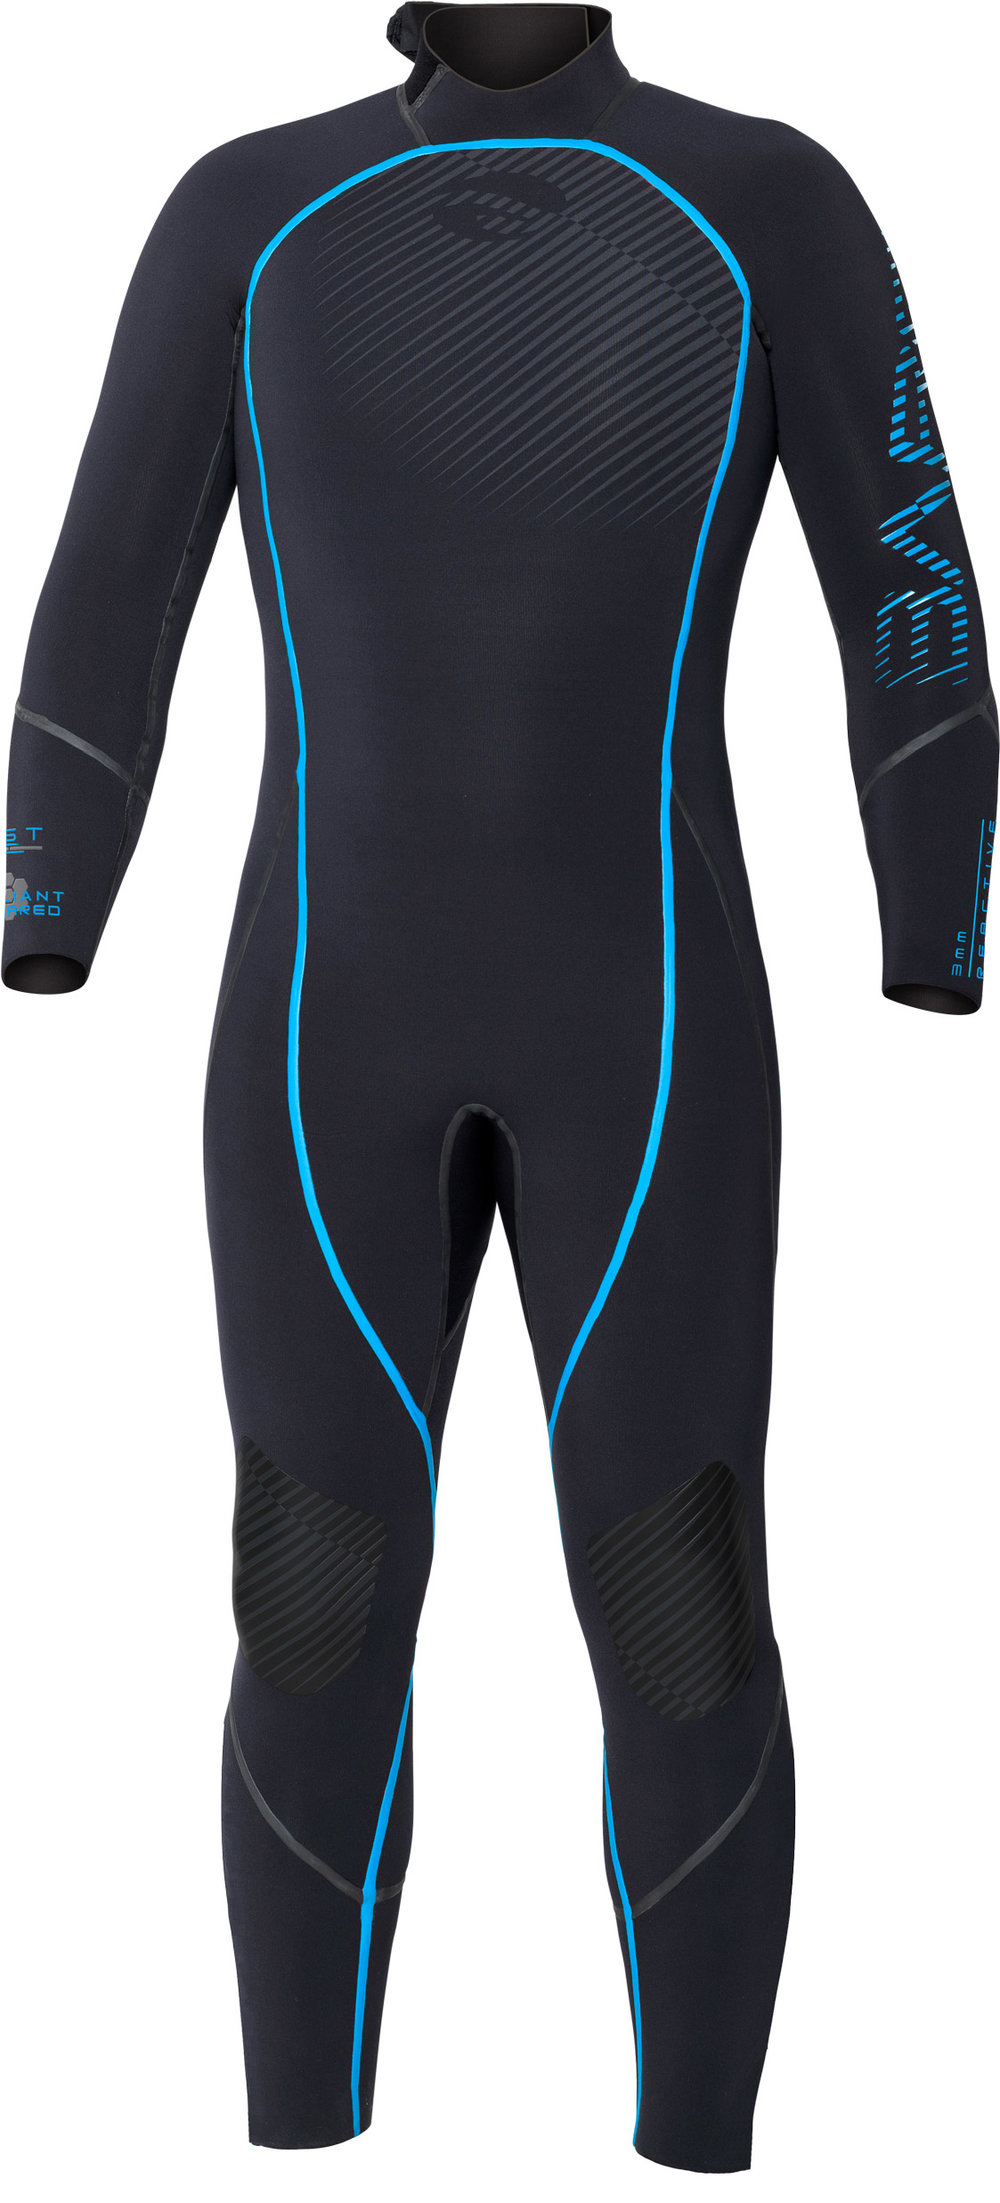 BARE Reactive Mens Wetsuit Image.jpg